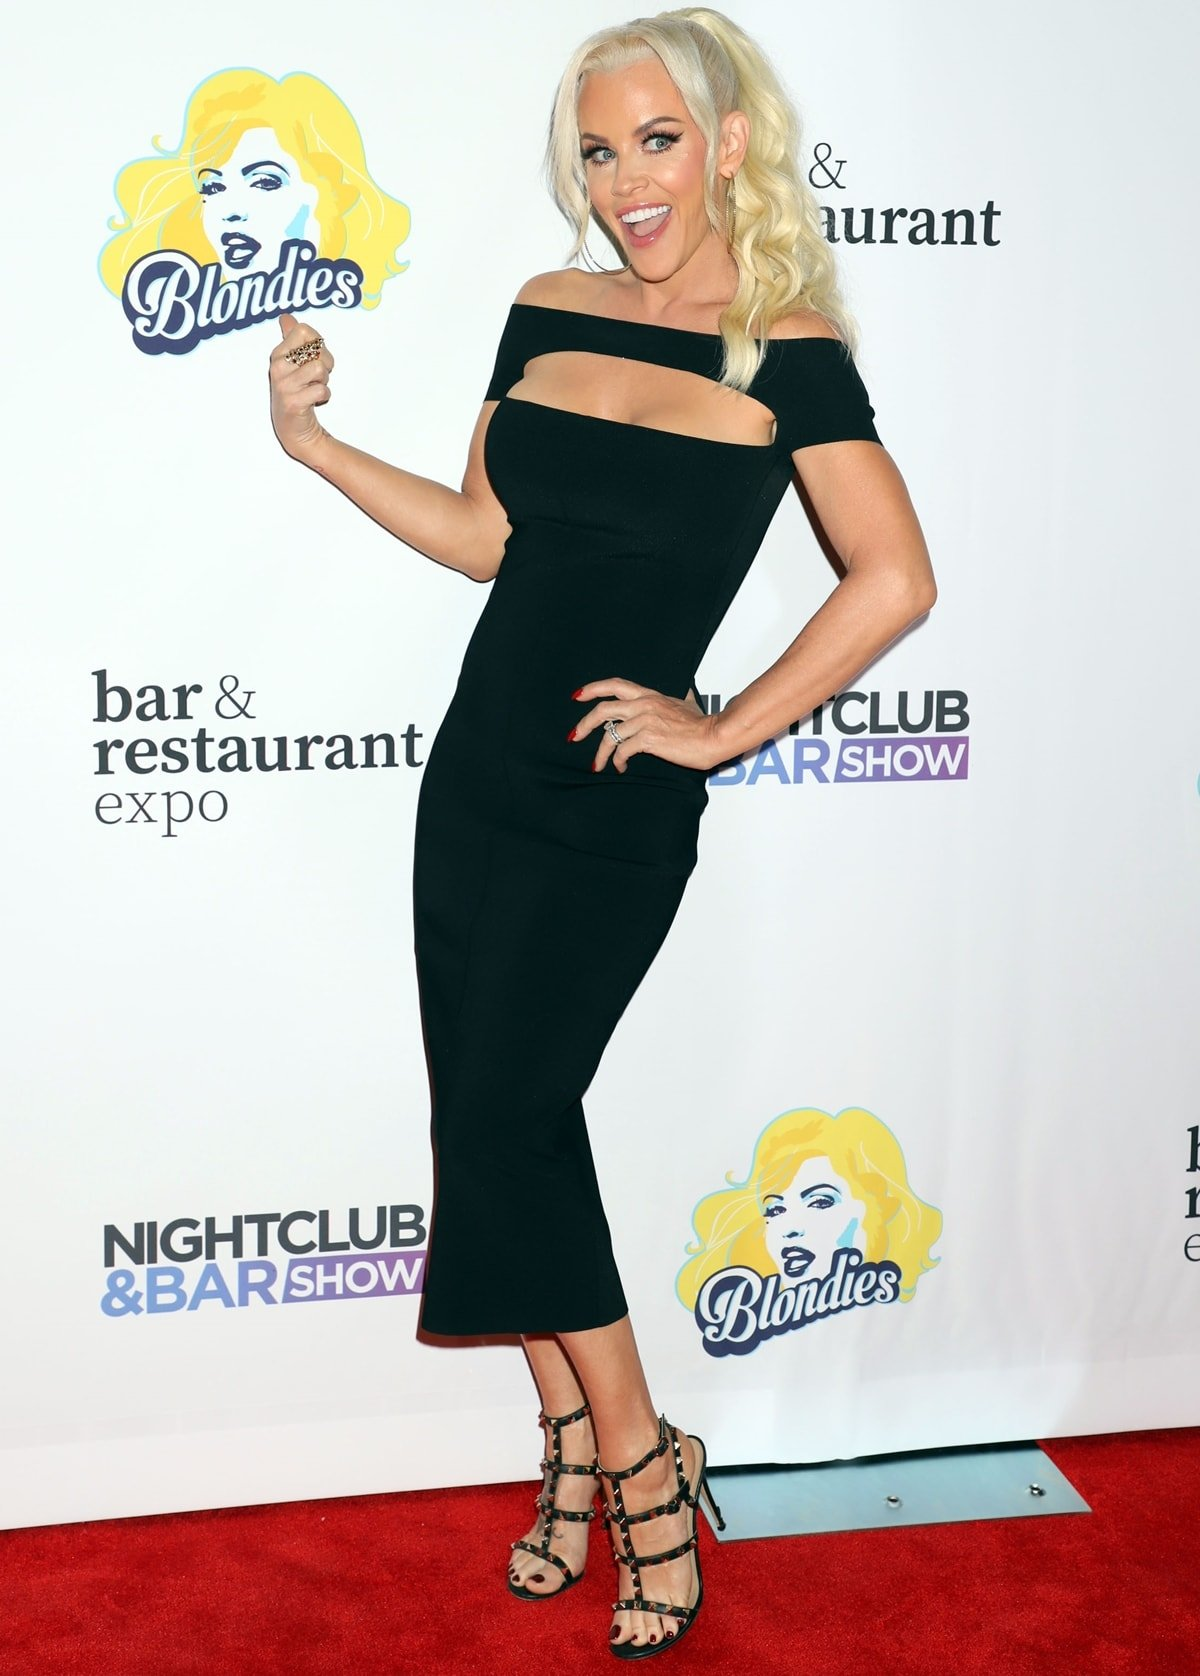 Jenny McCarthy attends Day 2 of the 35th Annual Nightclub & Bar Show and World Tea Expo at the Las Vegas Convention Center on June 29, 2021 in Las Vegas, Nevada